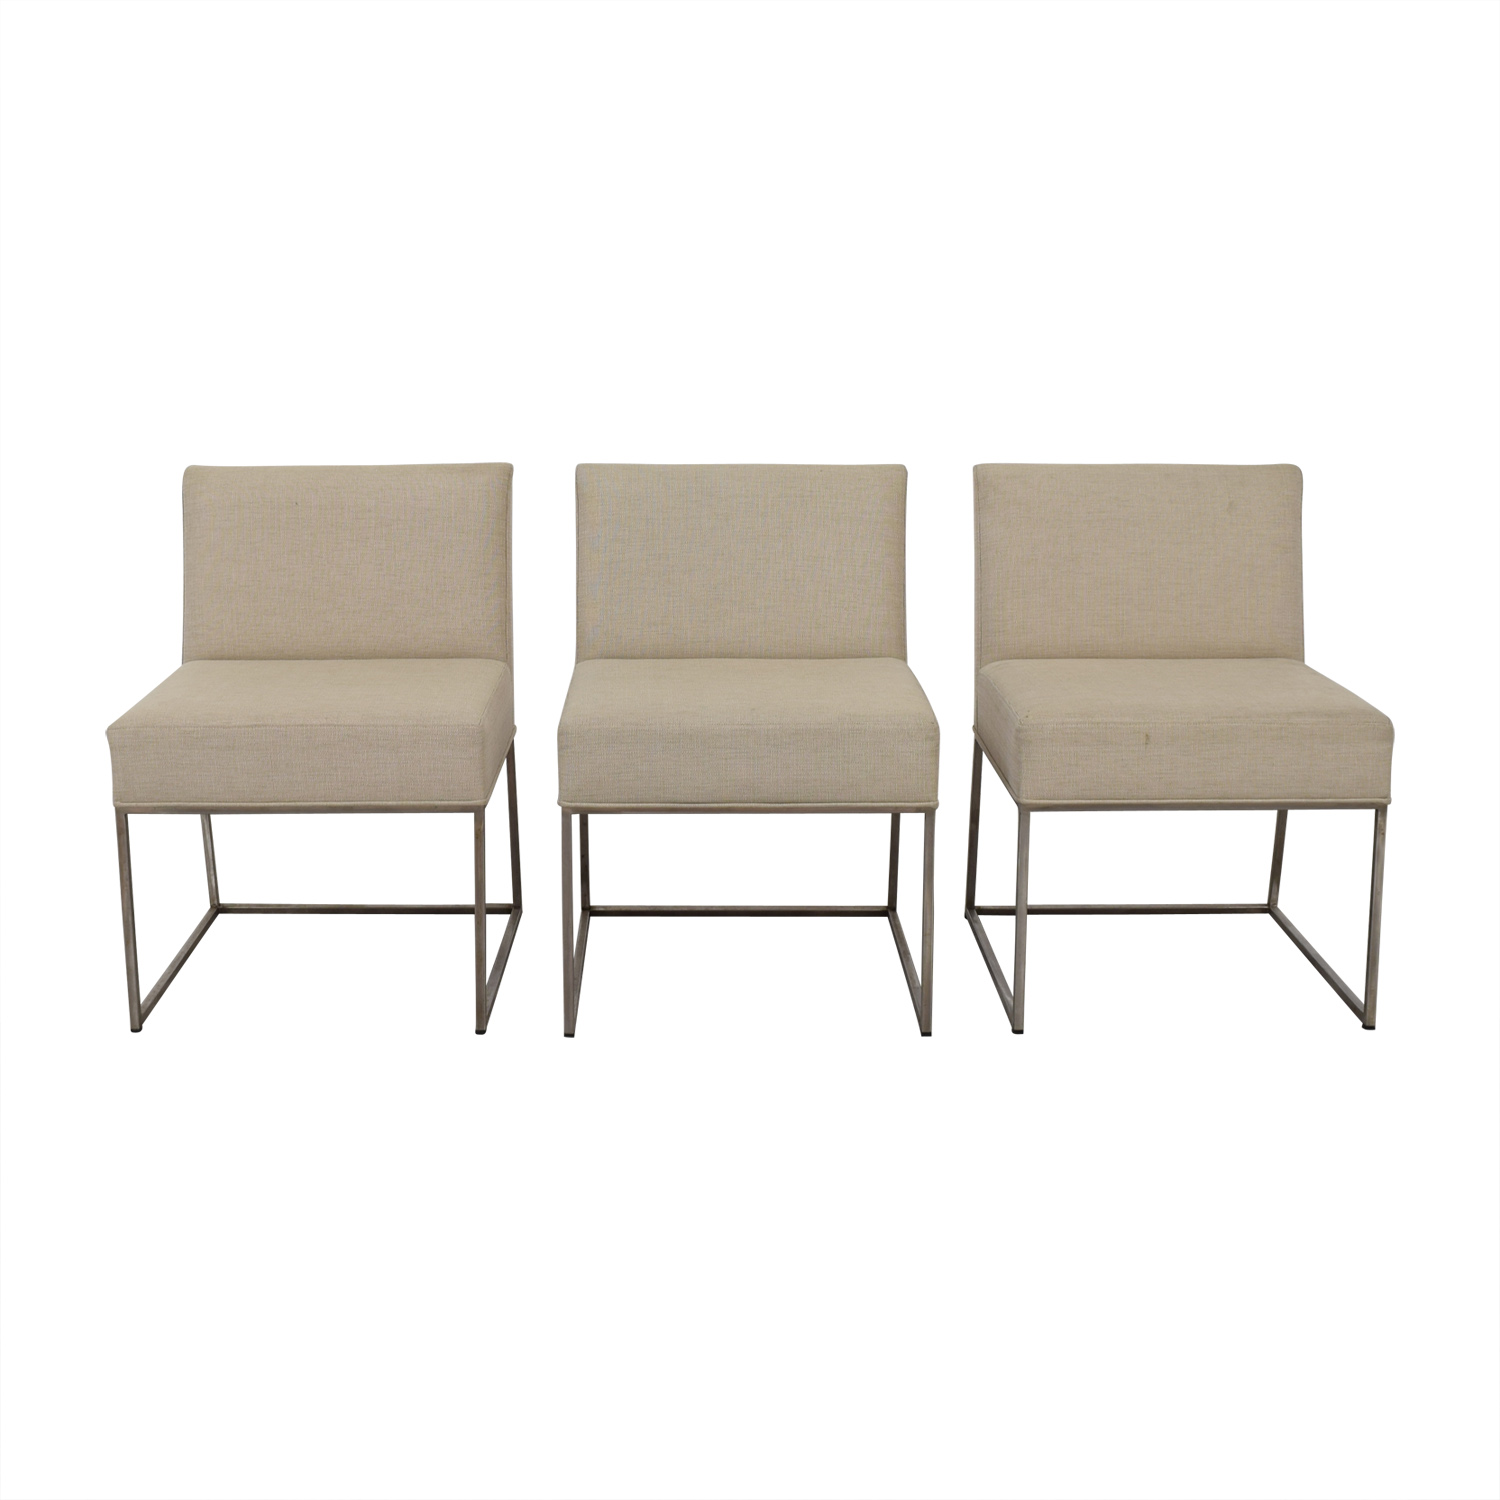 Kastiel Kastiel Beige Upholstered Dining Chairs coupon